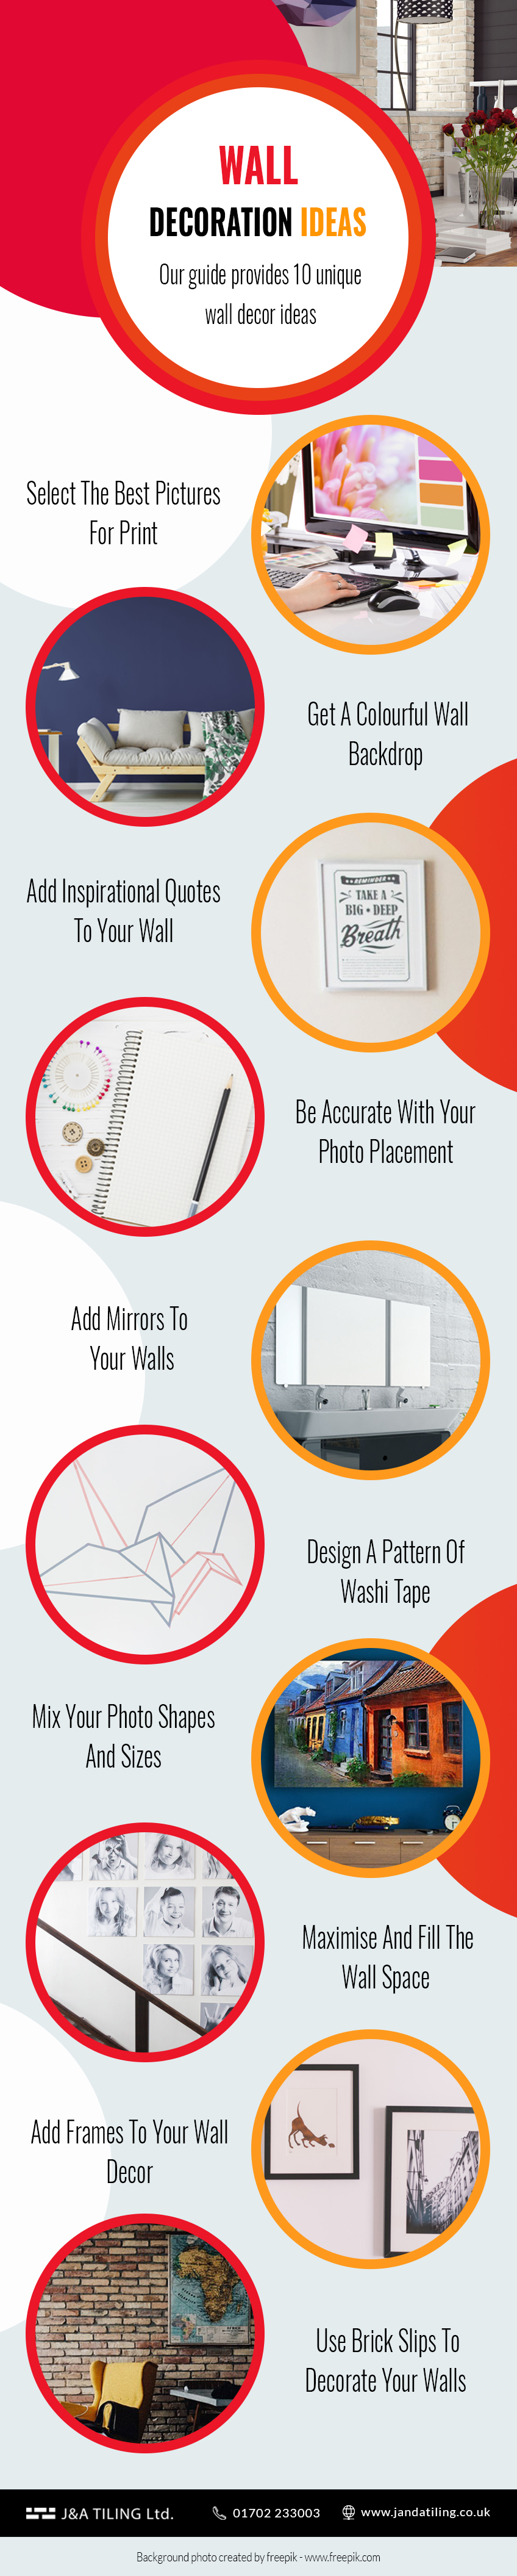 wall decor ideas infographic